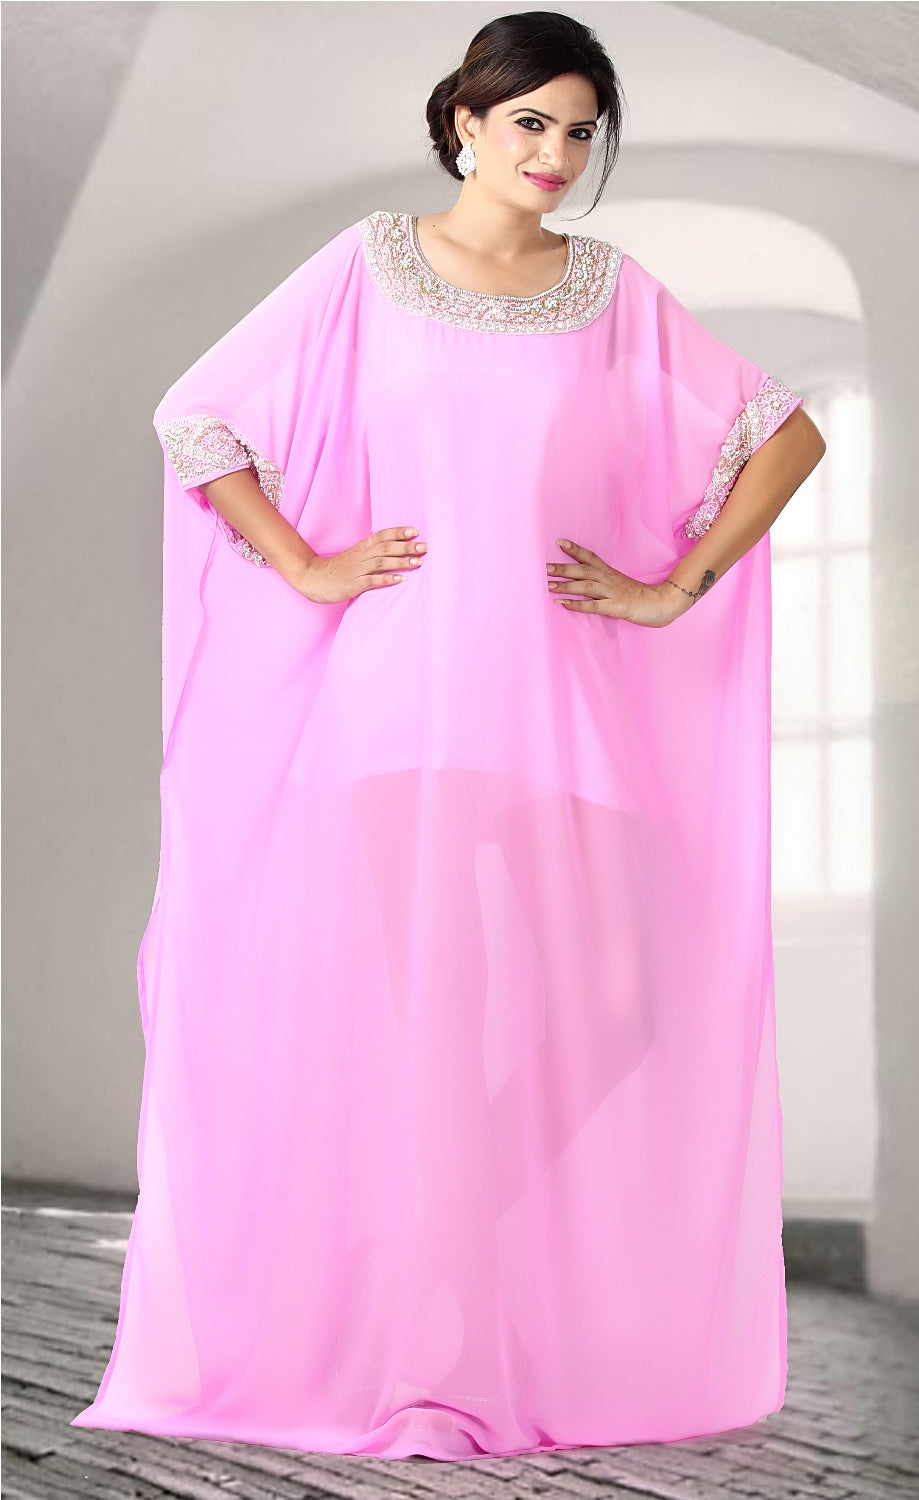 Party wear kaftan Dubai Kaftan Wedding kaftan Long Dress Farasha Maxi Dress Jalabiaya Abaya Caftan - Silk kaftan